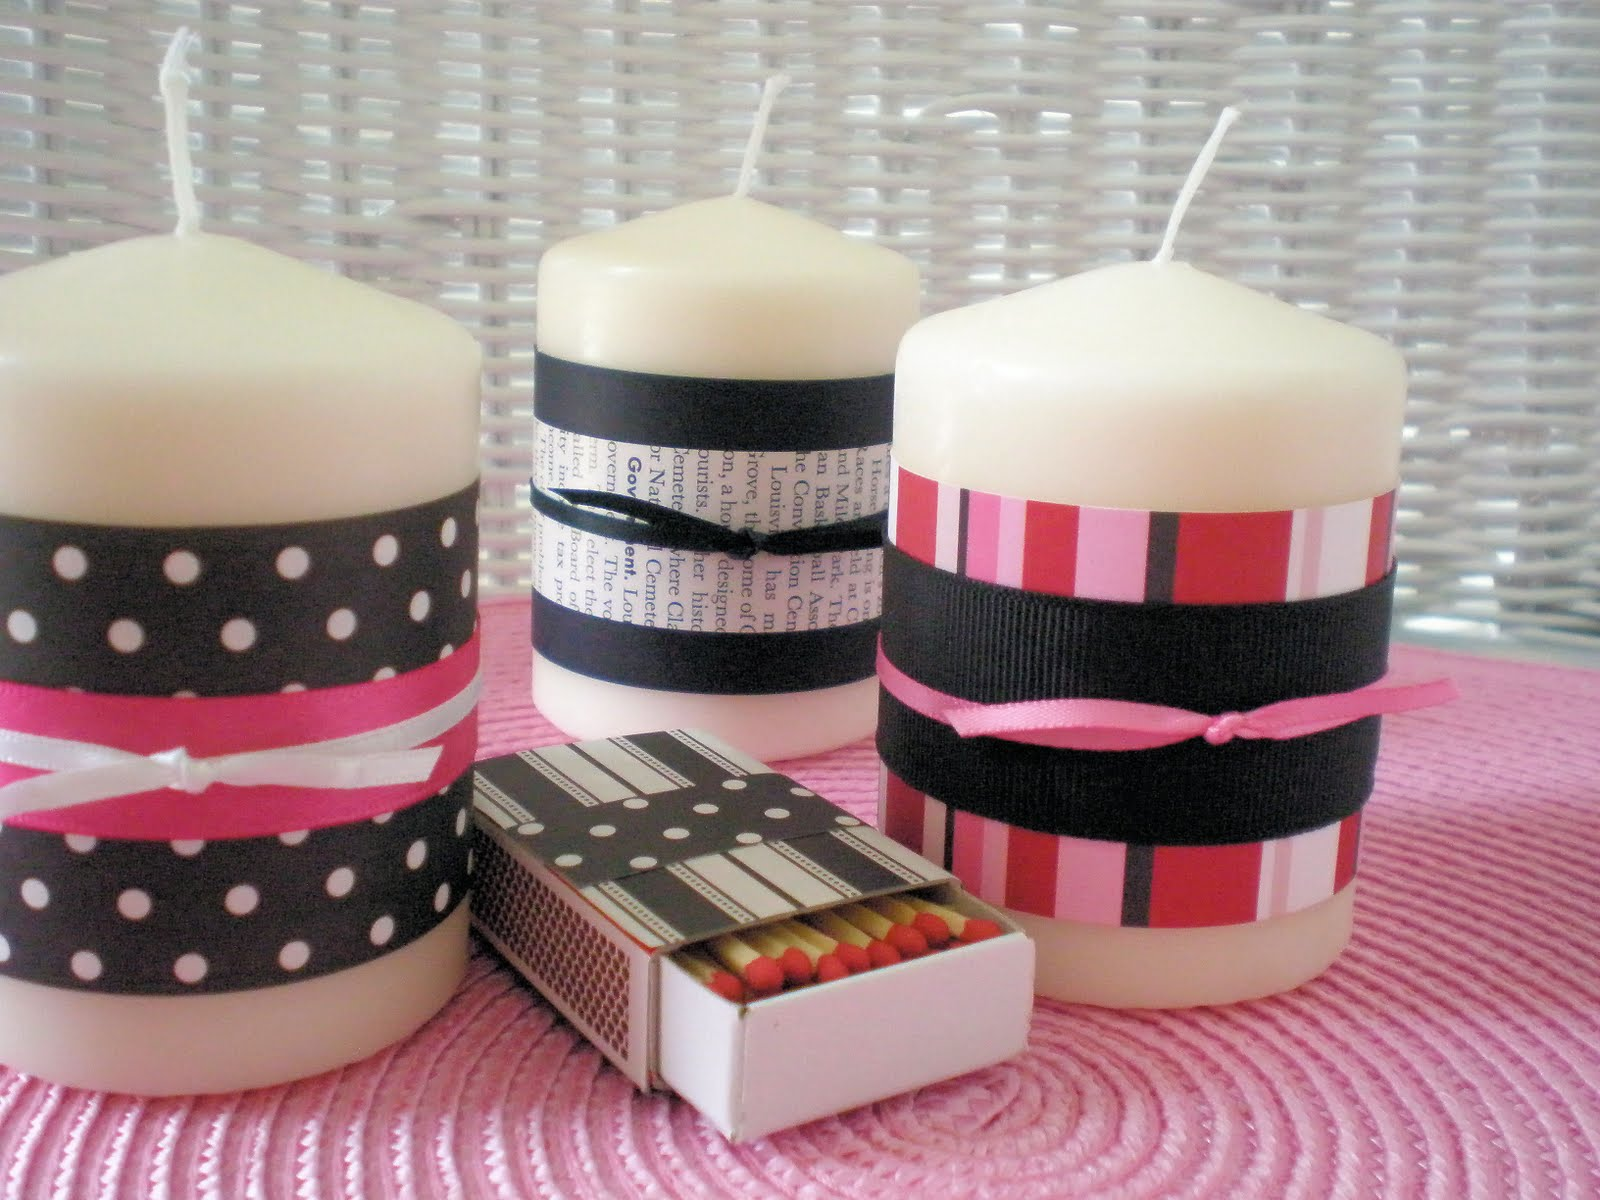 Kids Craft: Decorated Candles and Matches - Mothers Day Project - A ...